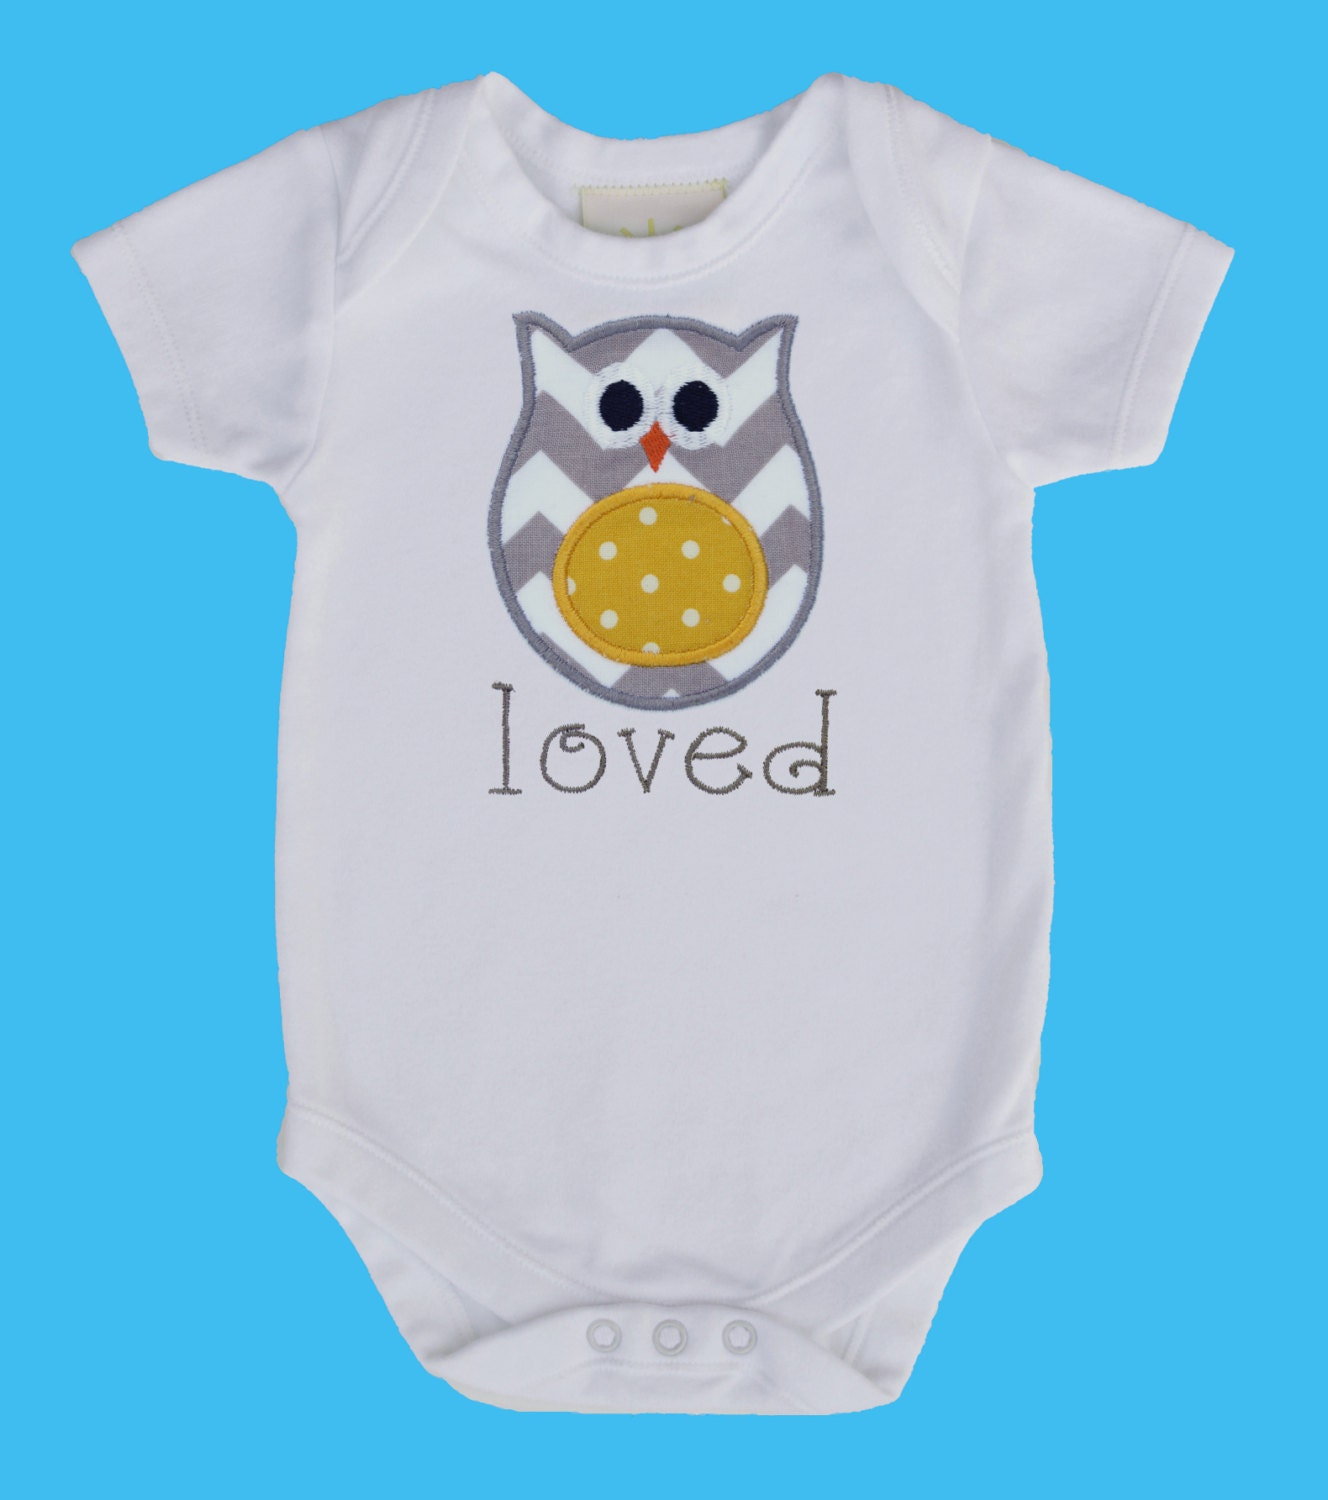 Baby Gifts For Either Gender : Personalized bodysuit or toddler shirt chevron by tinysunshine